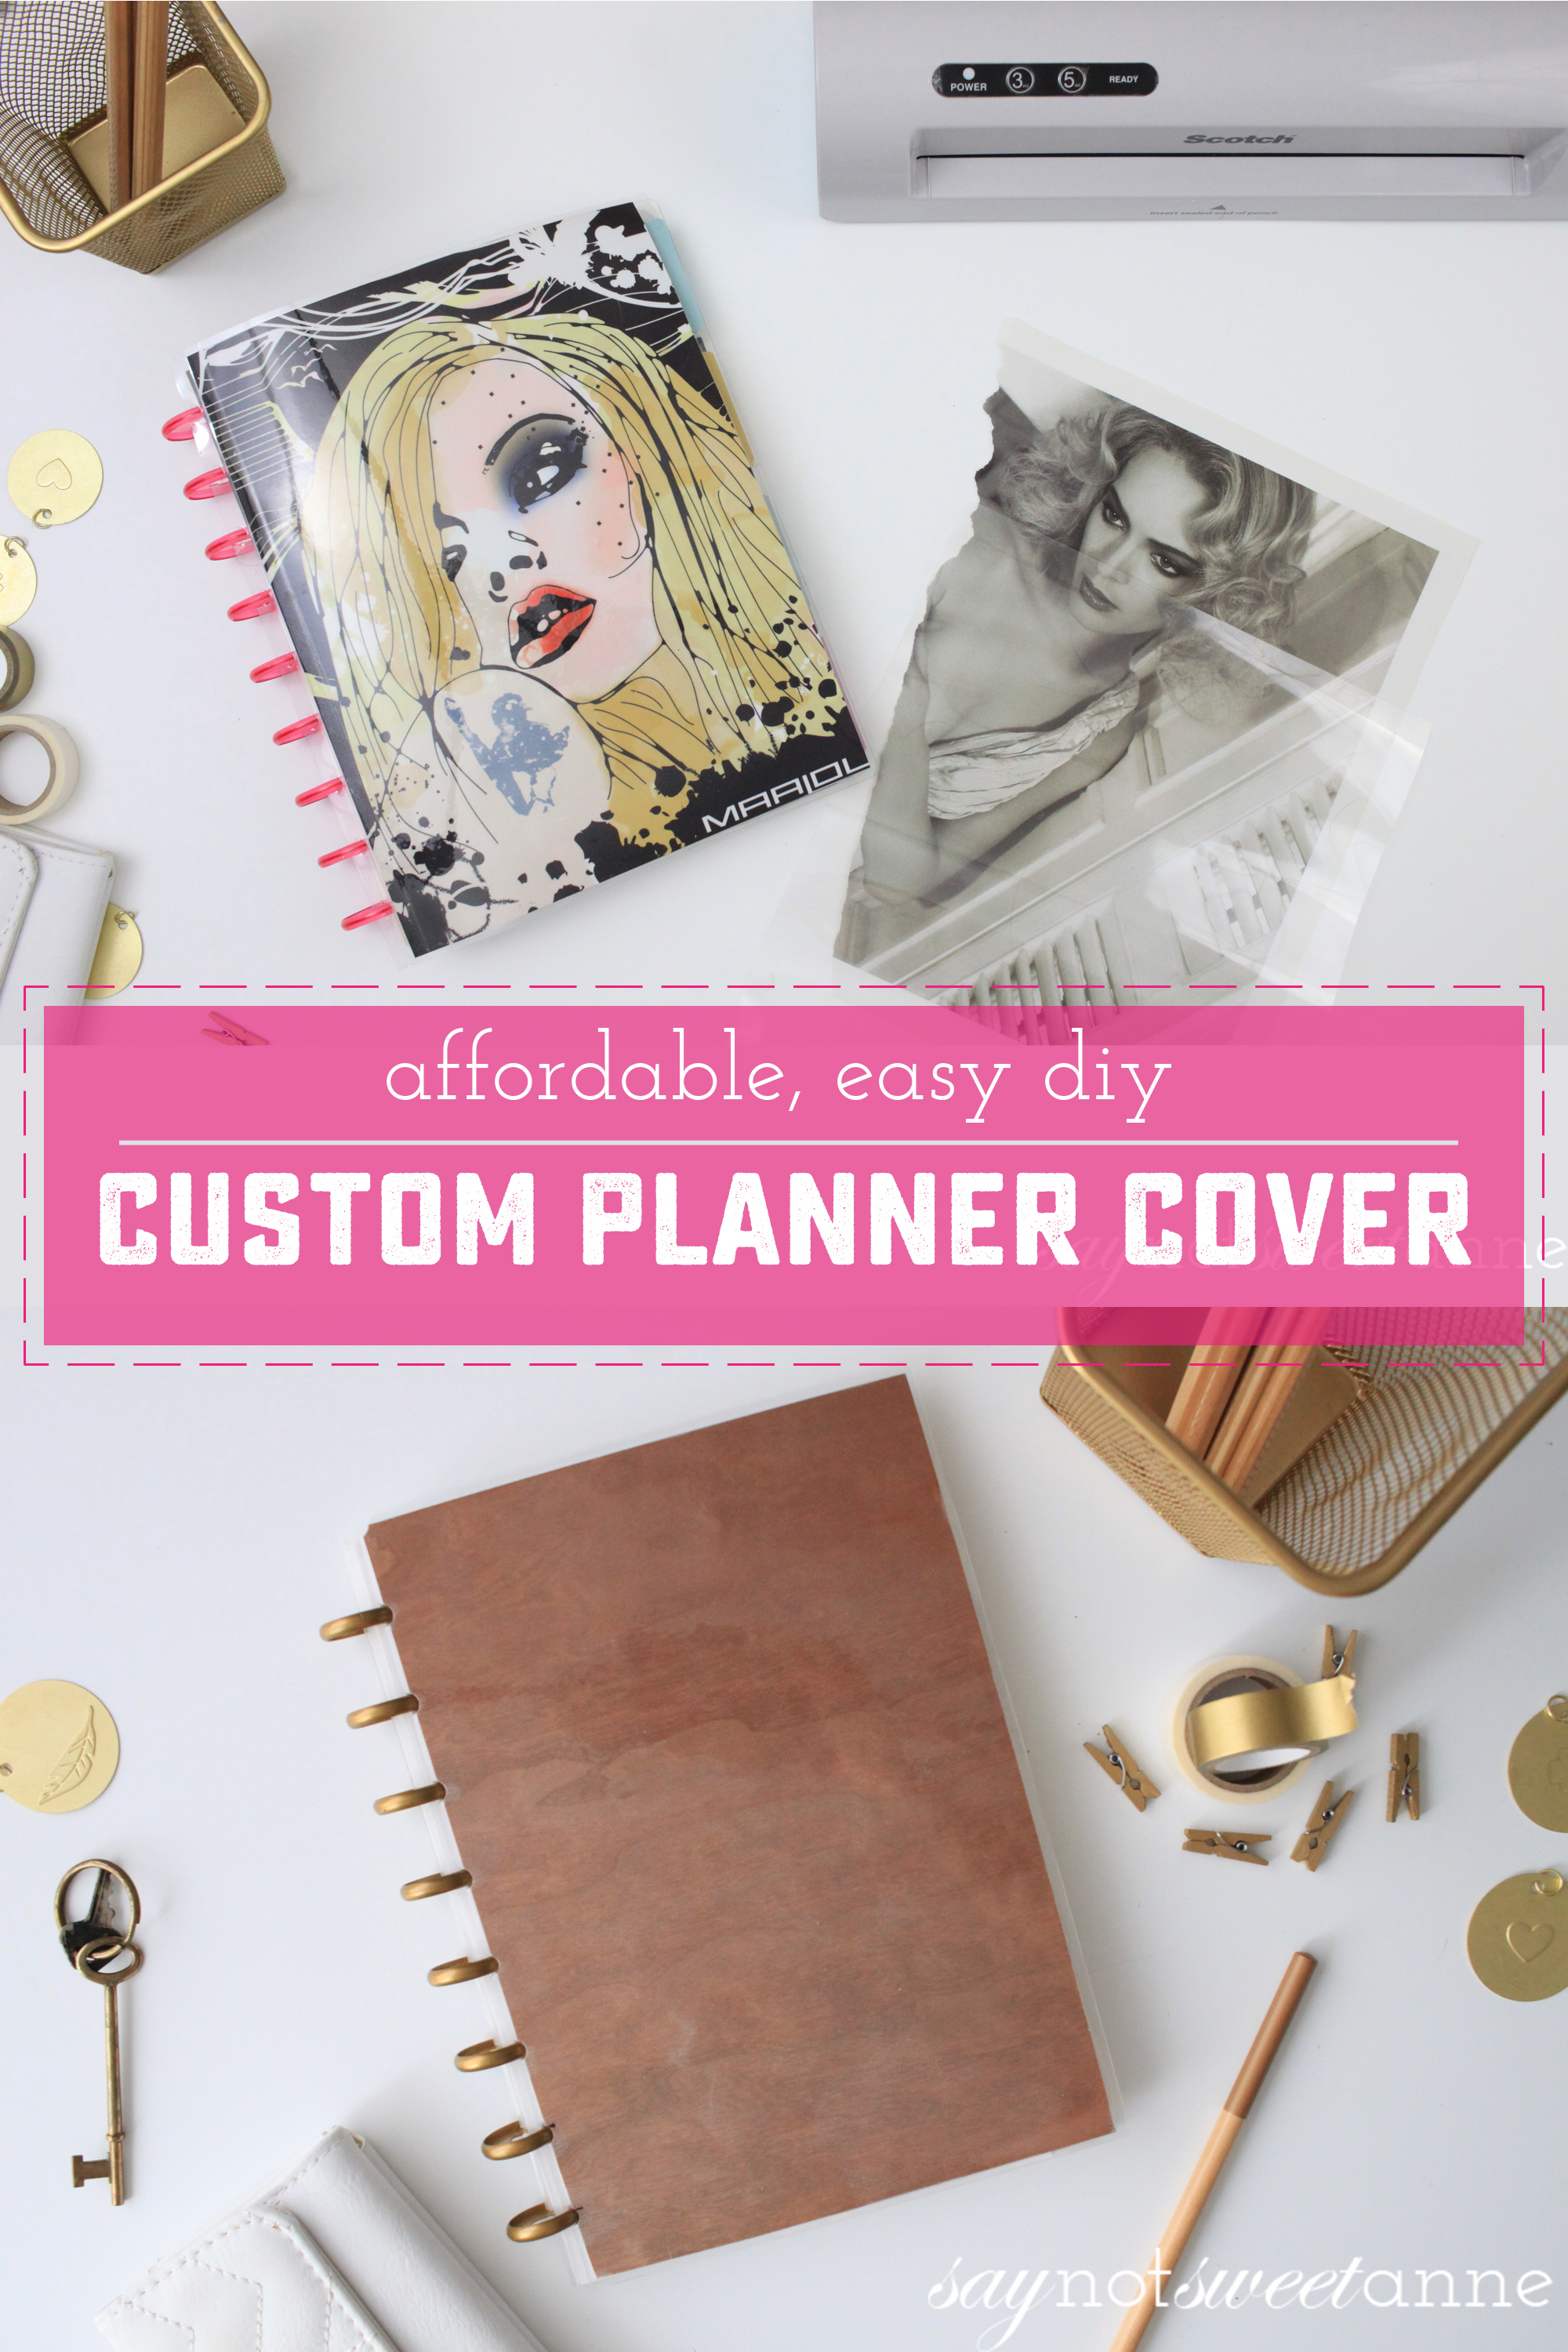 Make your own custom covers for pennies, and without proprietary kits! Perfect for Martha Stewart, Tul, Arc, Create 365 MAMBI Happy Planners, IQ 360, and Levenger Circa brands! | Saynotsweetanne.com